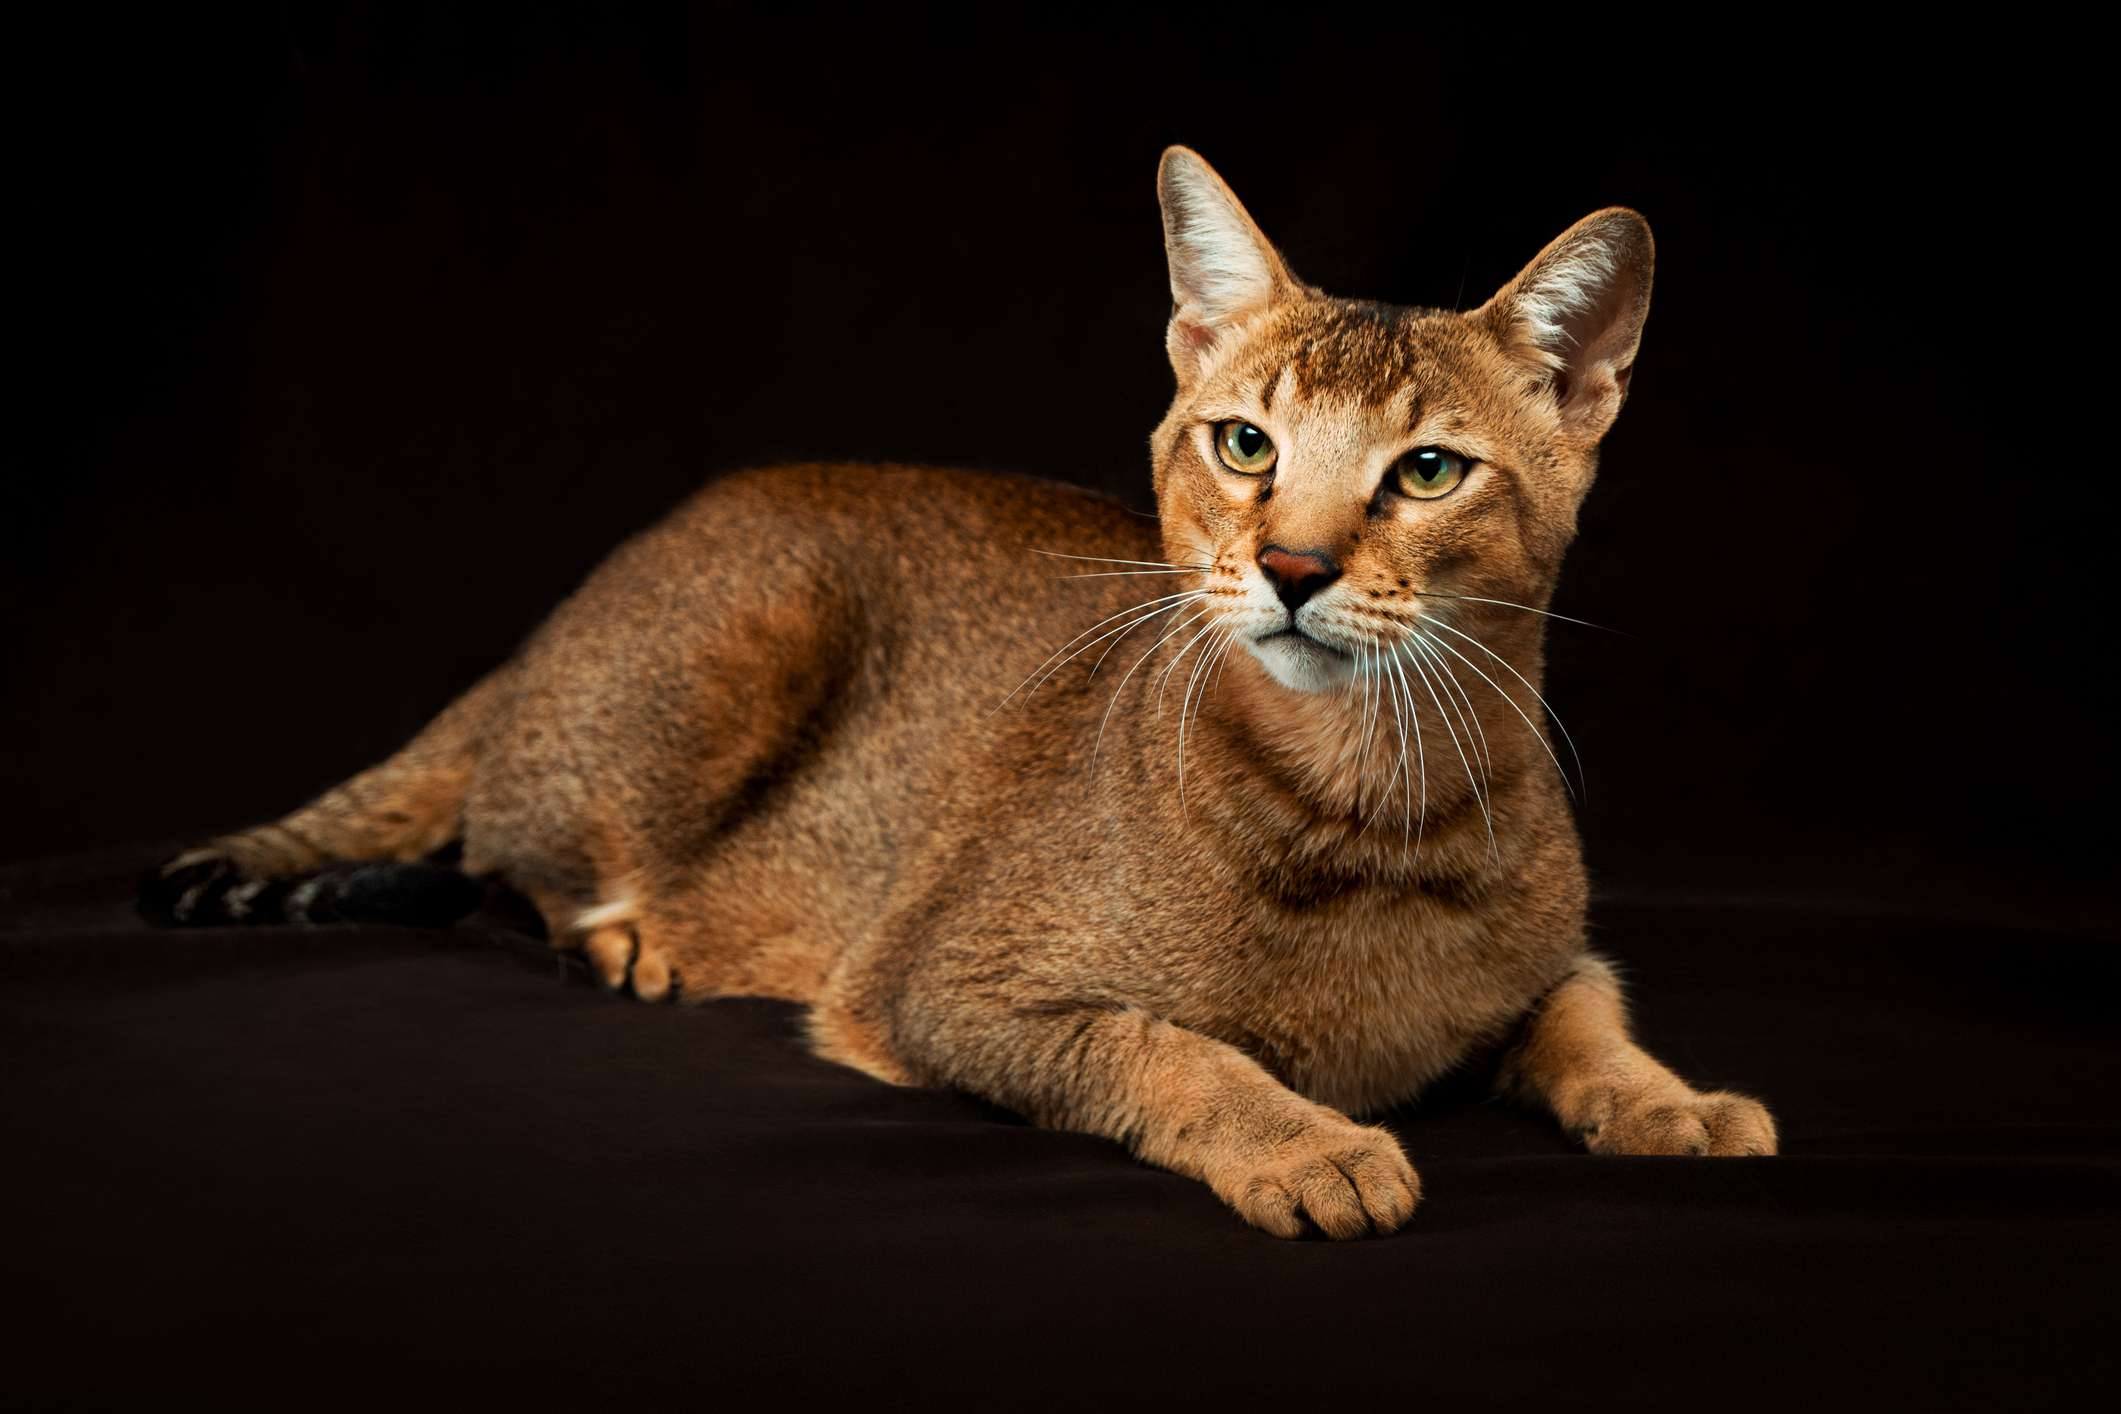 Chausie cat laying down.